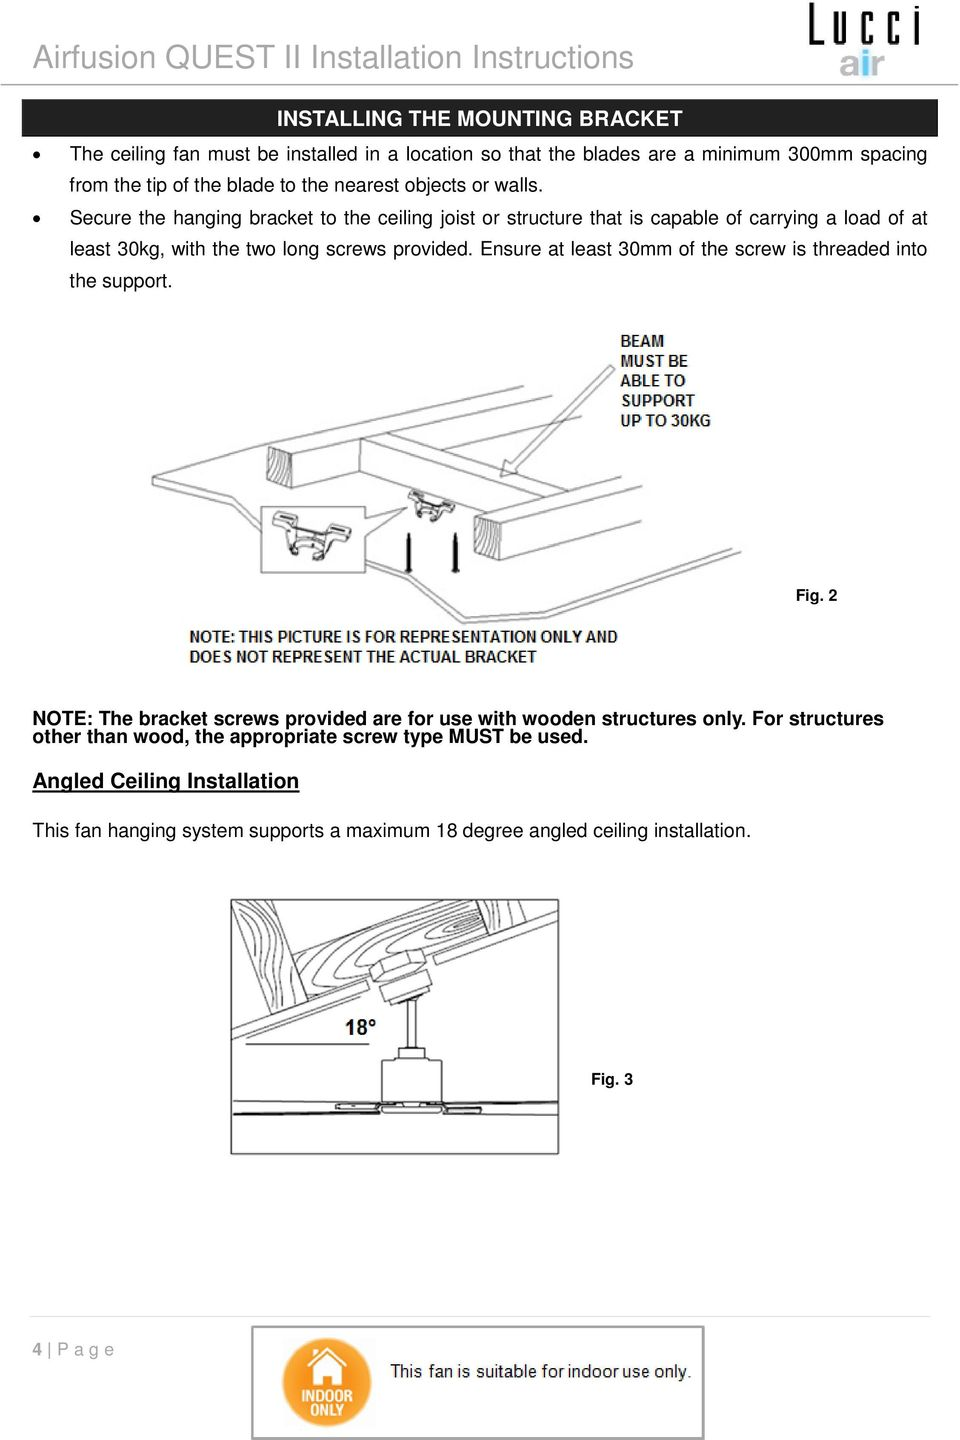 Lucci Airfusion Quest Ii Ceiling Fan Pdf Hunter Remote Wiring Diagram Besides 4 Way Switches Ensure At Least 30mm Of The Screw Is Threaded Into Support Fig 2